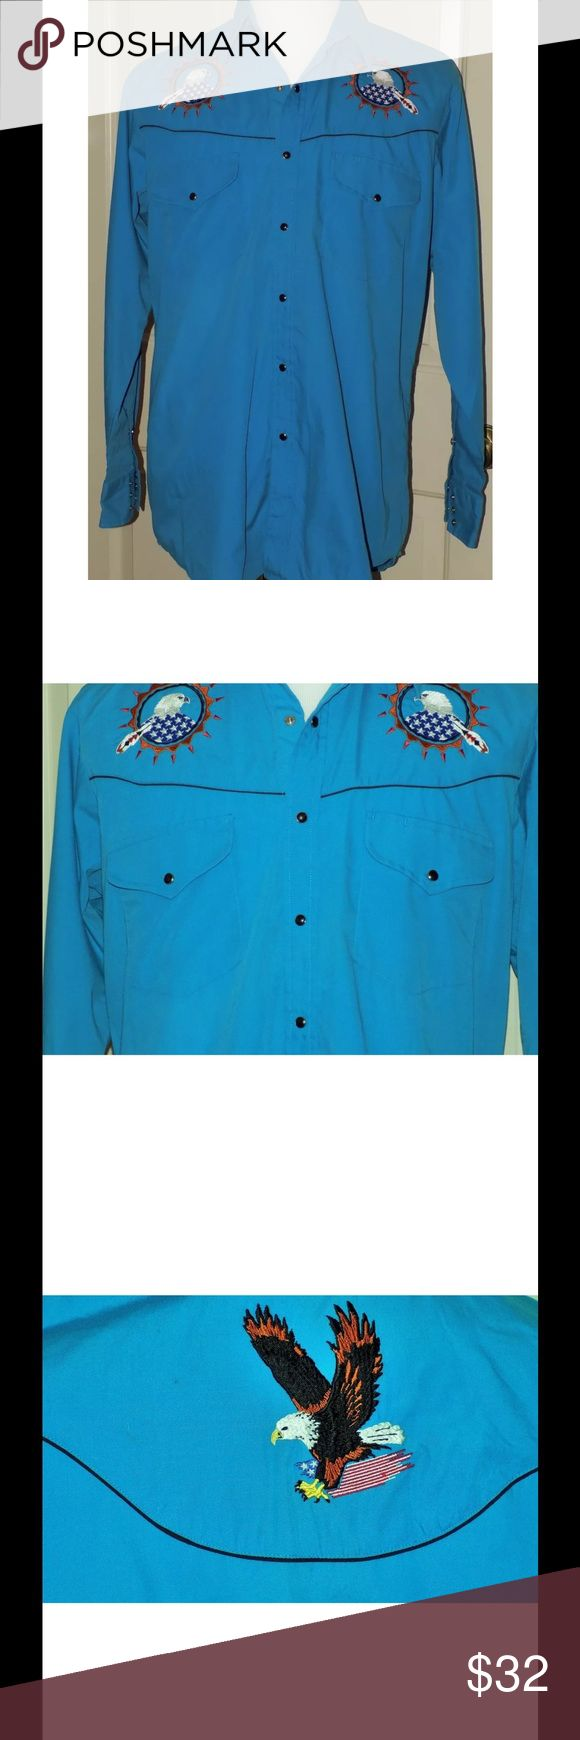 ROCK CREEK RANCH Turquoise Embroidered Western ROCK CREEK RANCH Turquoise EAGLE Embroidered Western Shirt  Size M rock creek ranch Shirts